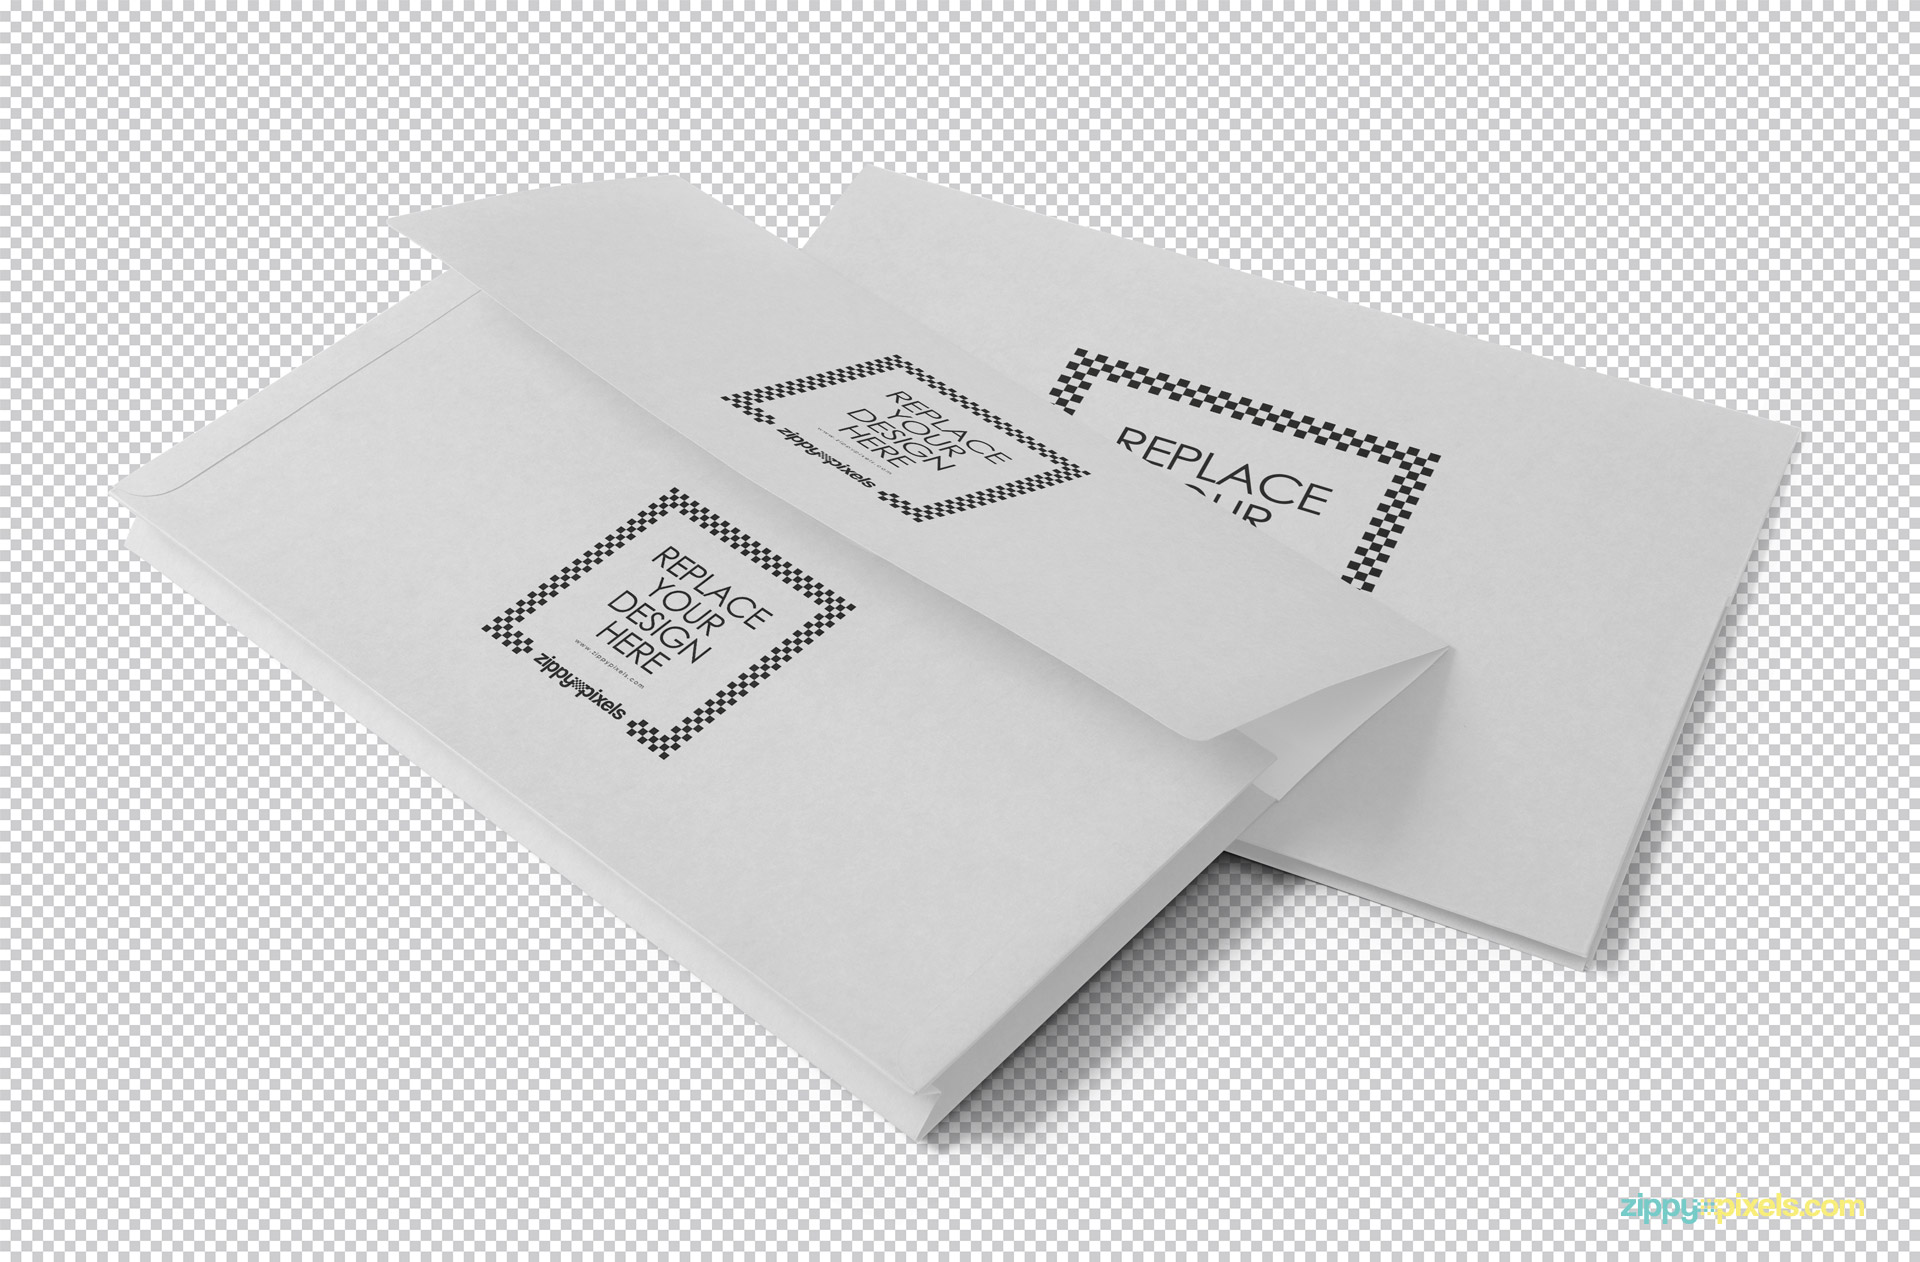 Two plain white file covers with greyscale background.